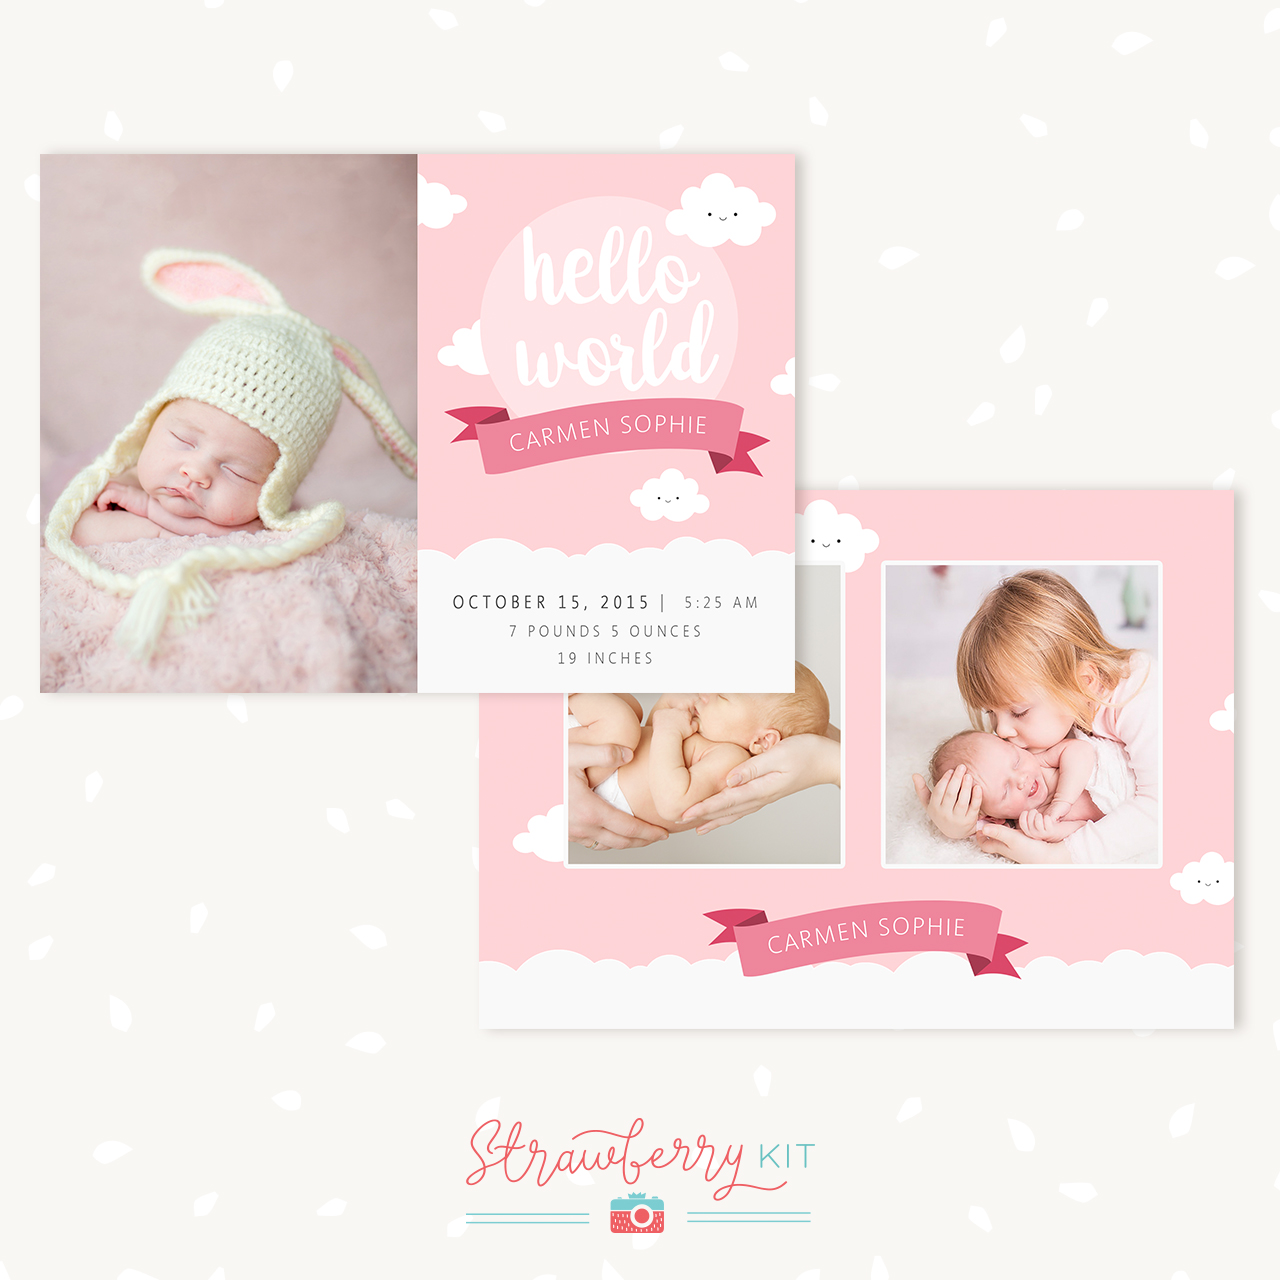 Birth Announcement Template Happy clouds Strawberry Kit – Birth Announcement Photoshop Template